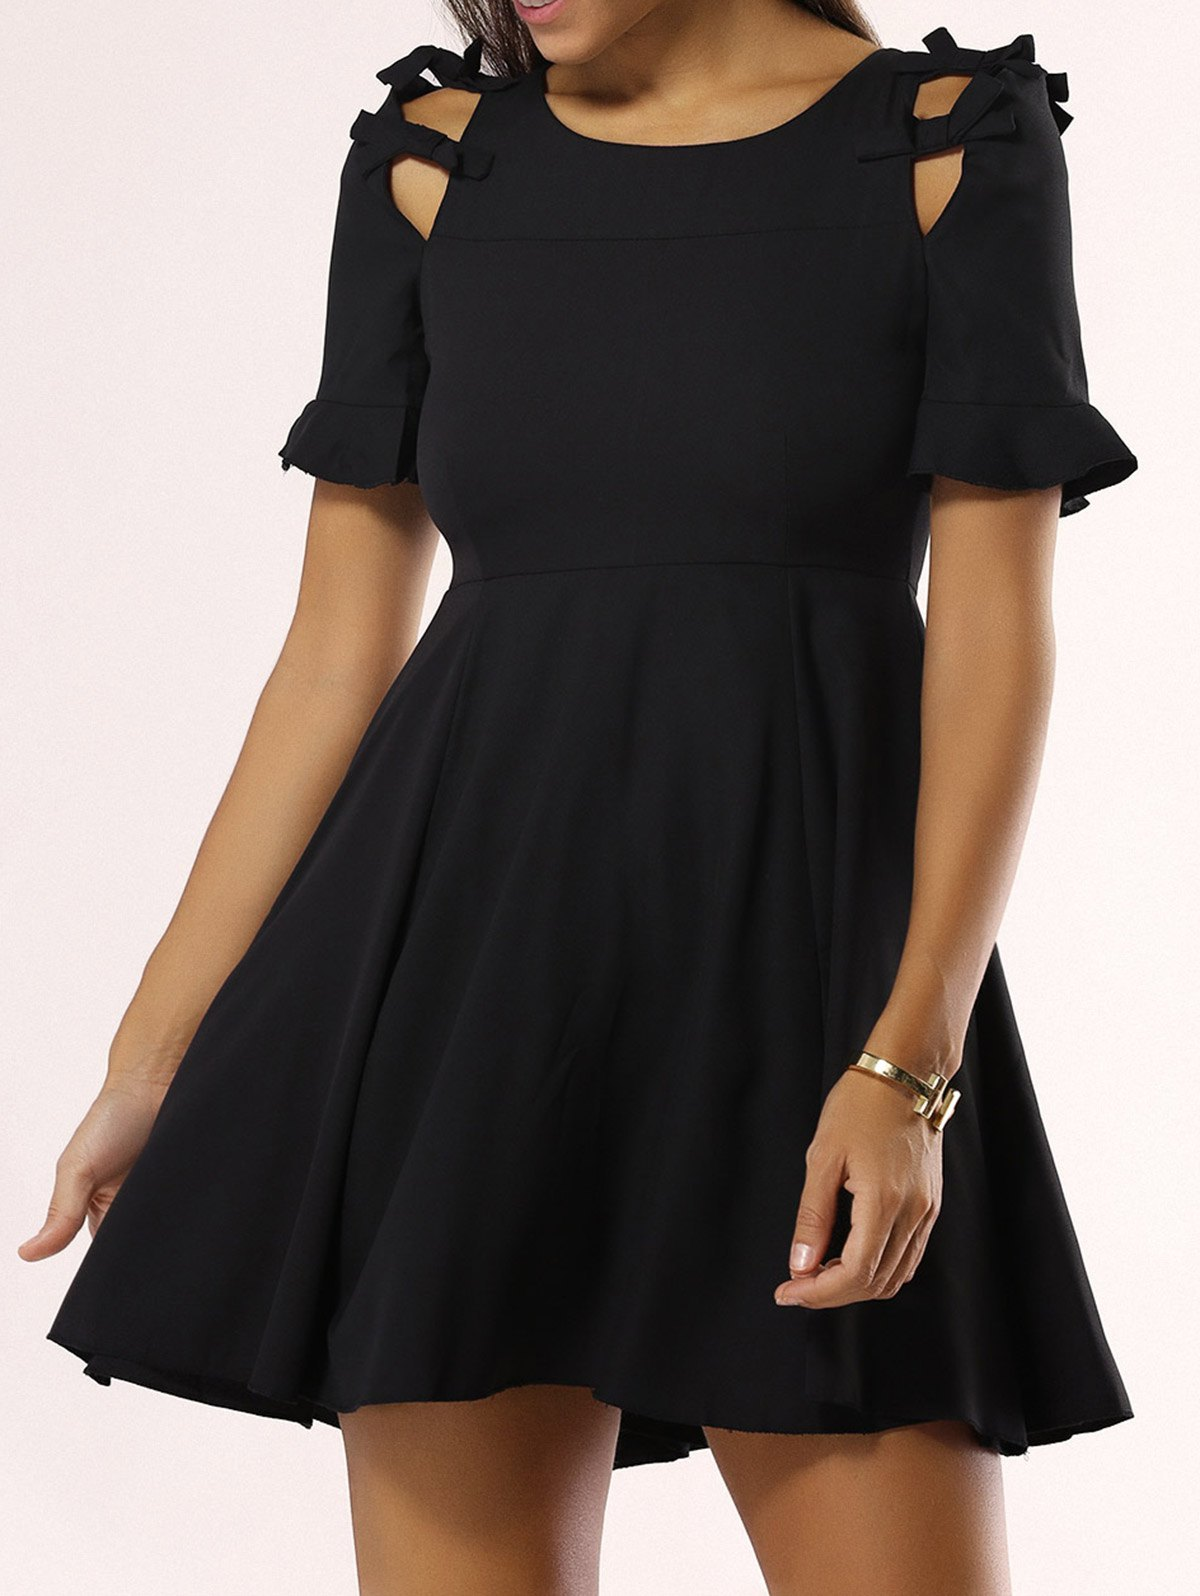 Stunning Bowknot Hollow Out Dress For Women - BLACK XL